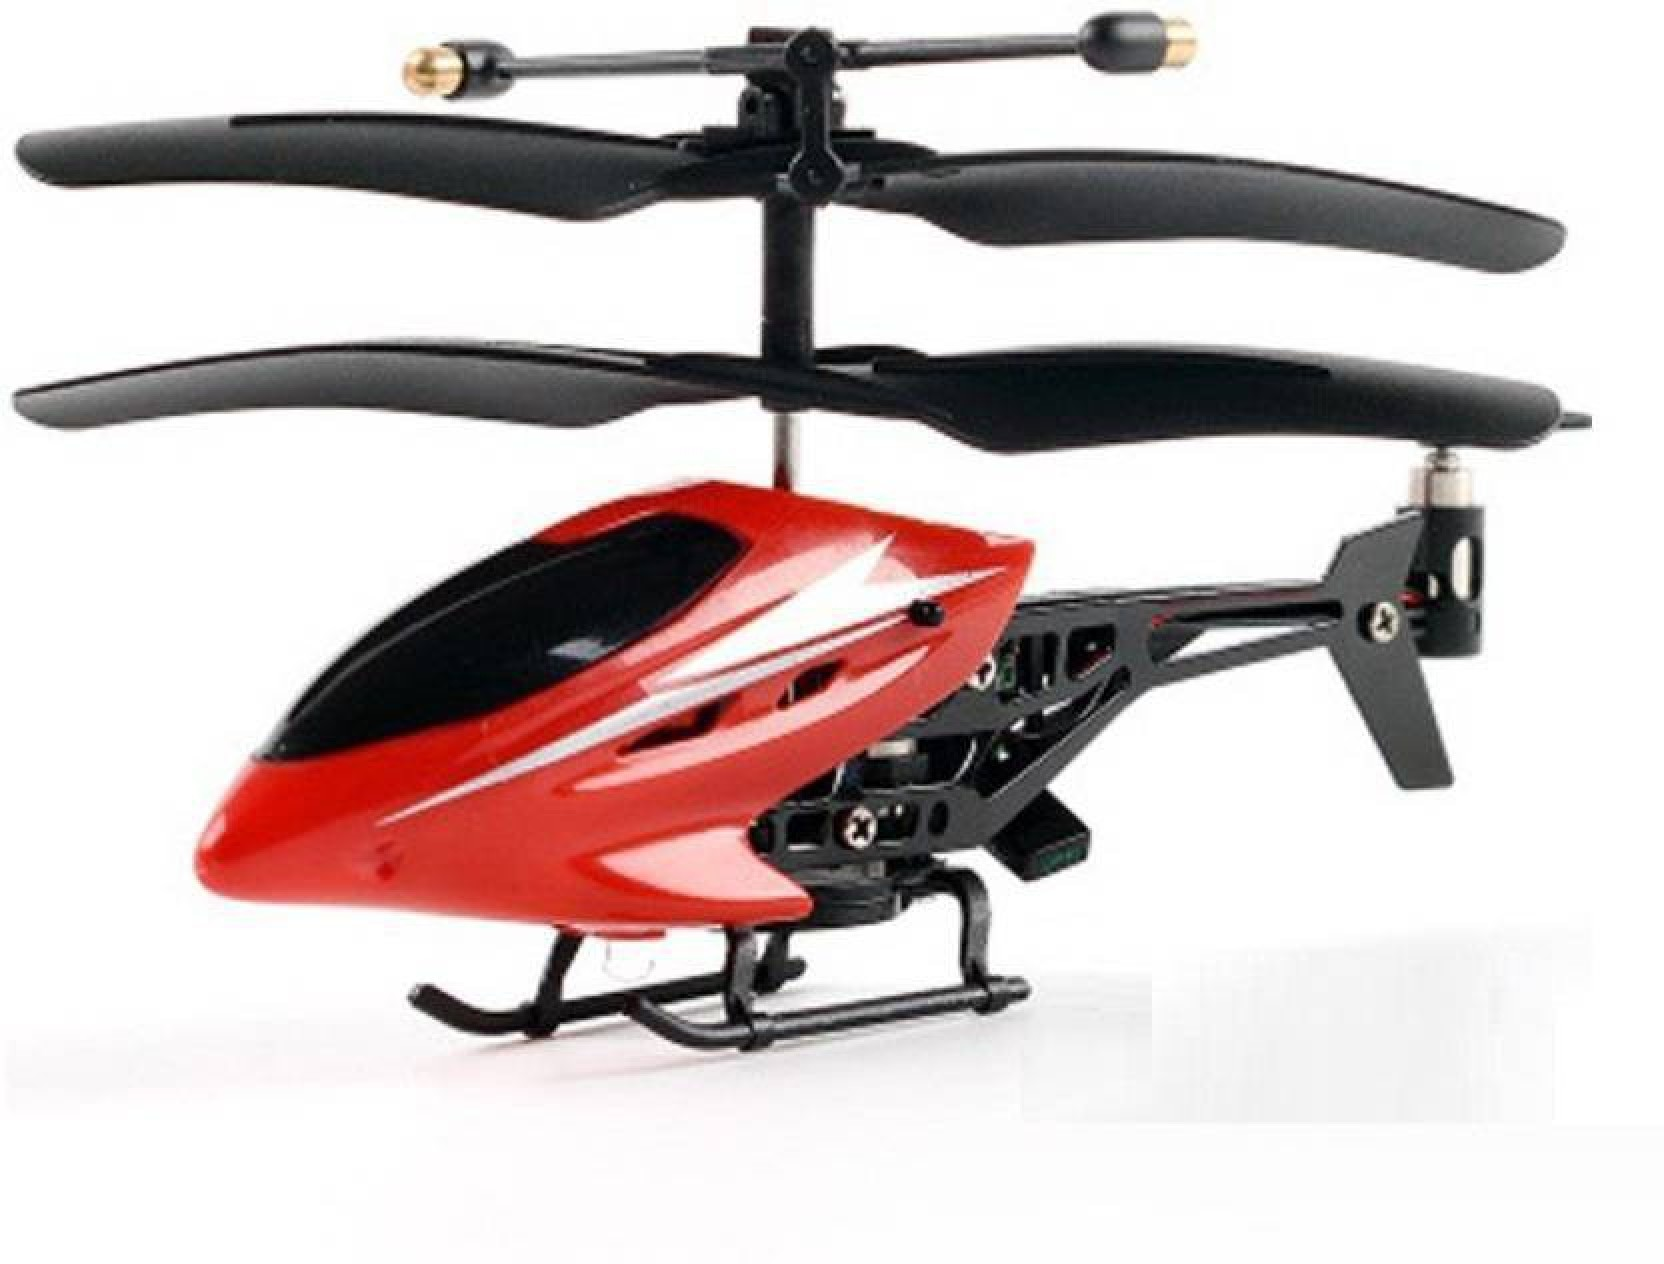 Royle Katoch Worlds Smallest 35 Channel Hx721 Infrared Remote 5 Radio Control Controlled Helicopter Built In Gyro Share